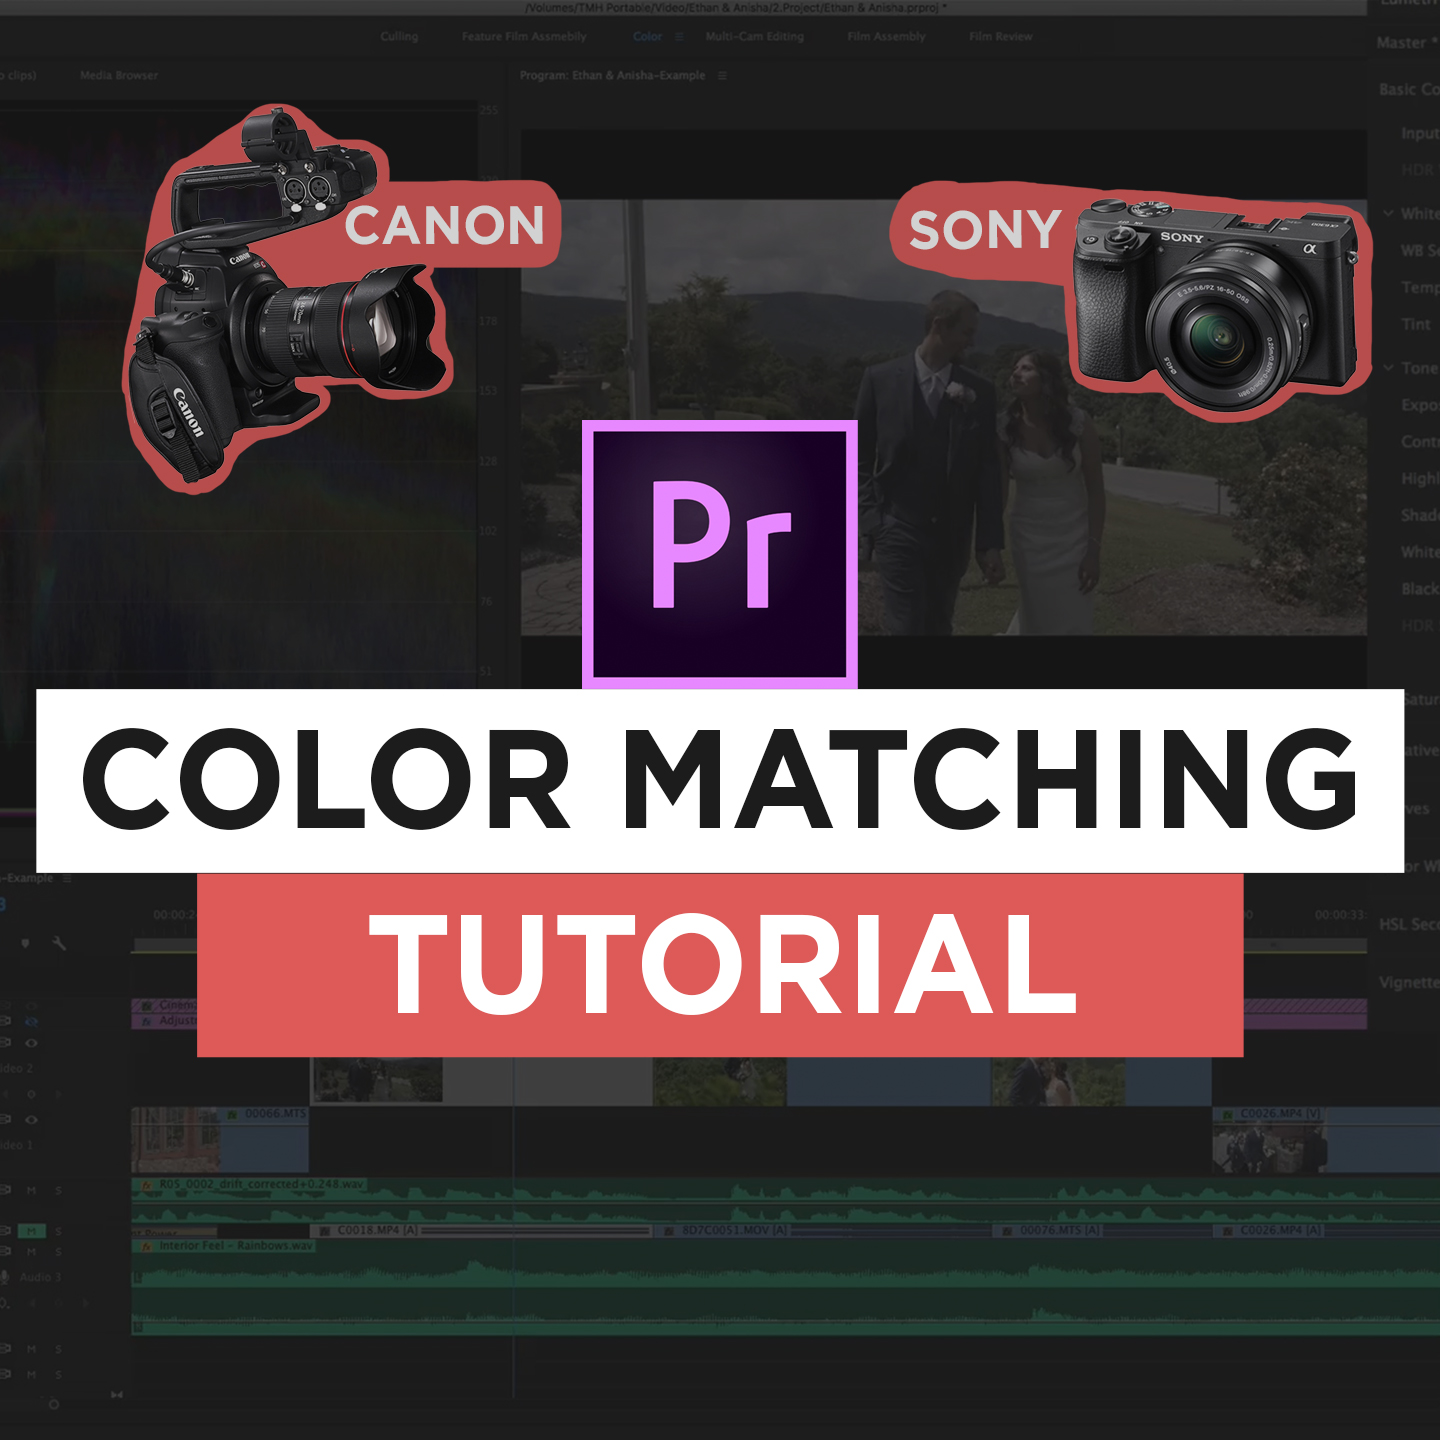 Color Grading Tutorial: How to Match Canon & Sony Footage | Virginia